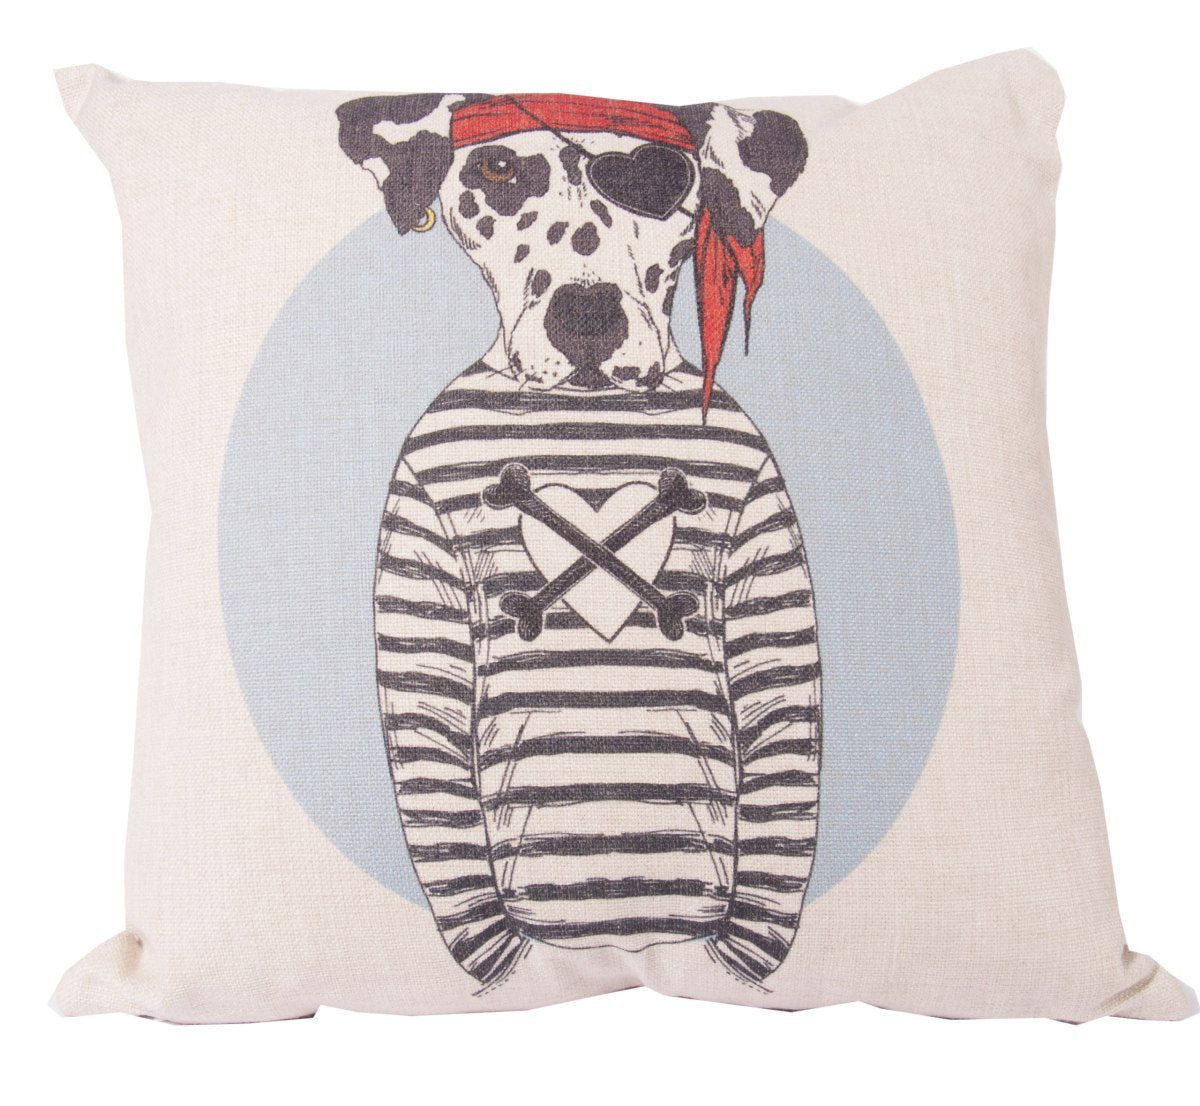 Pirate Dalmation Cushion Cover-fliphome.com.au